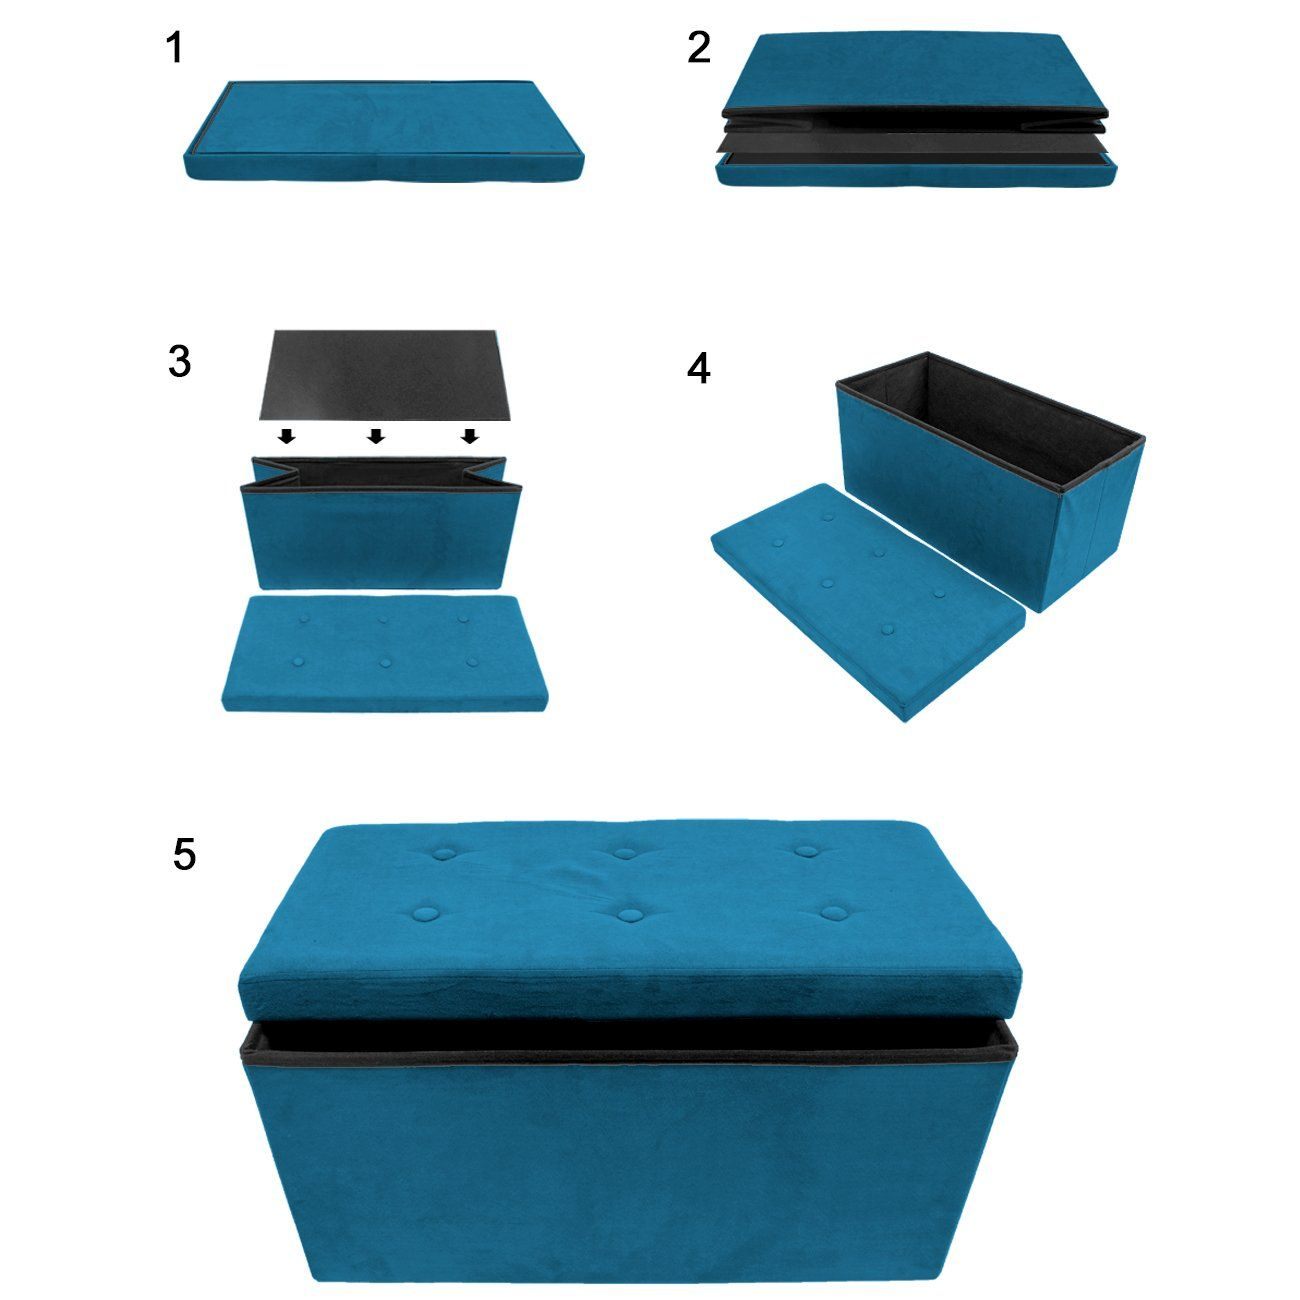 Sensational Sorbus Storage Ottoman Bench Collapsible Folding Bench Ibusinesslaw Wood Chair Design Ideas Ibusinesslaworg